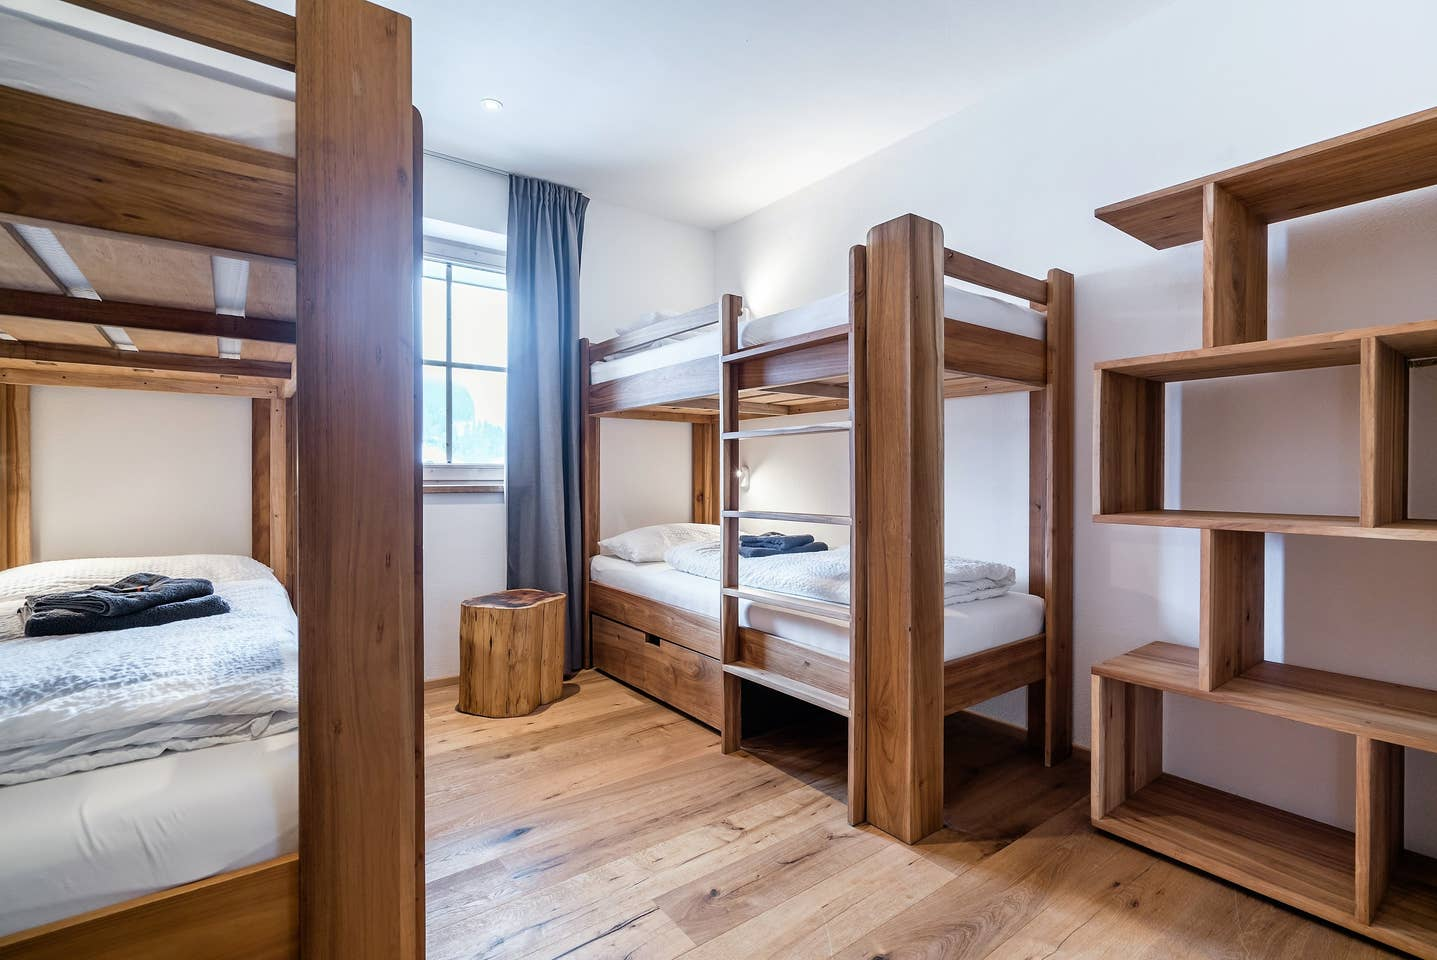 Single Booking - Bunk bed (room as pictured - own bathroom with shower and sink, toilet shared with 1 other room)*only 2 spots left!460 € per person